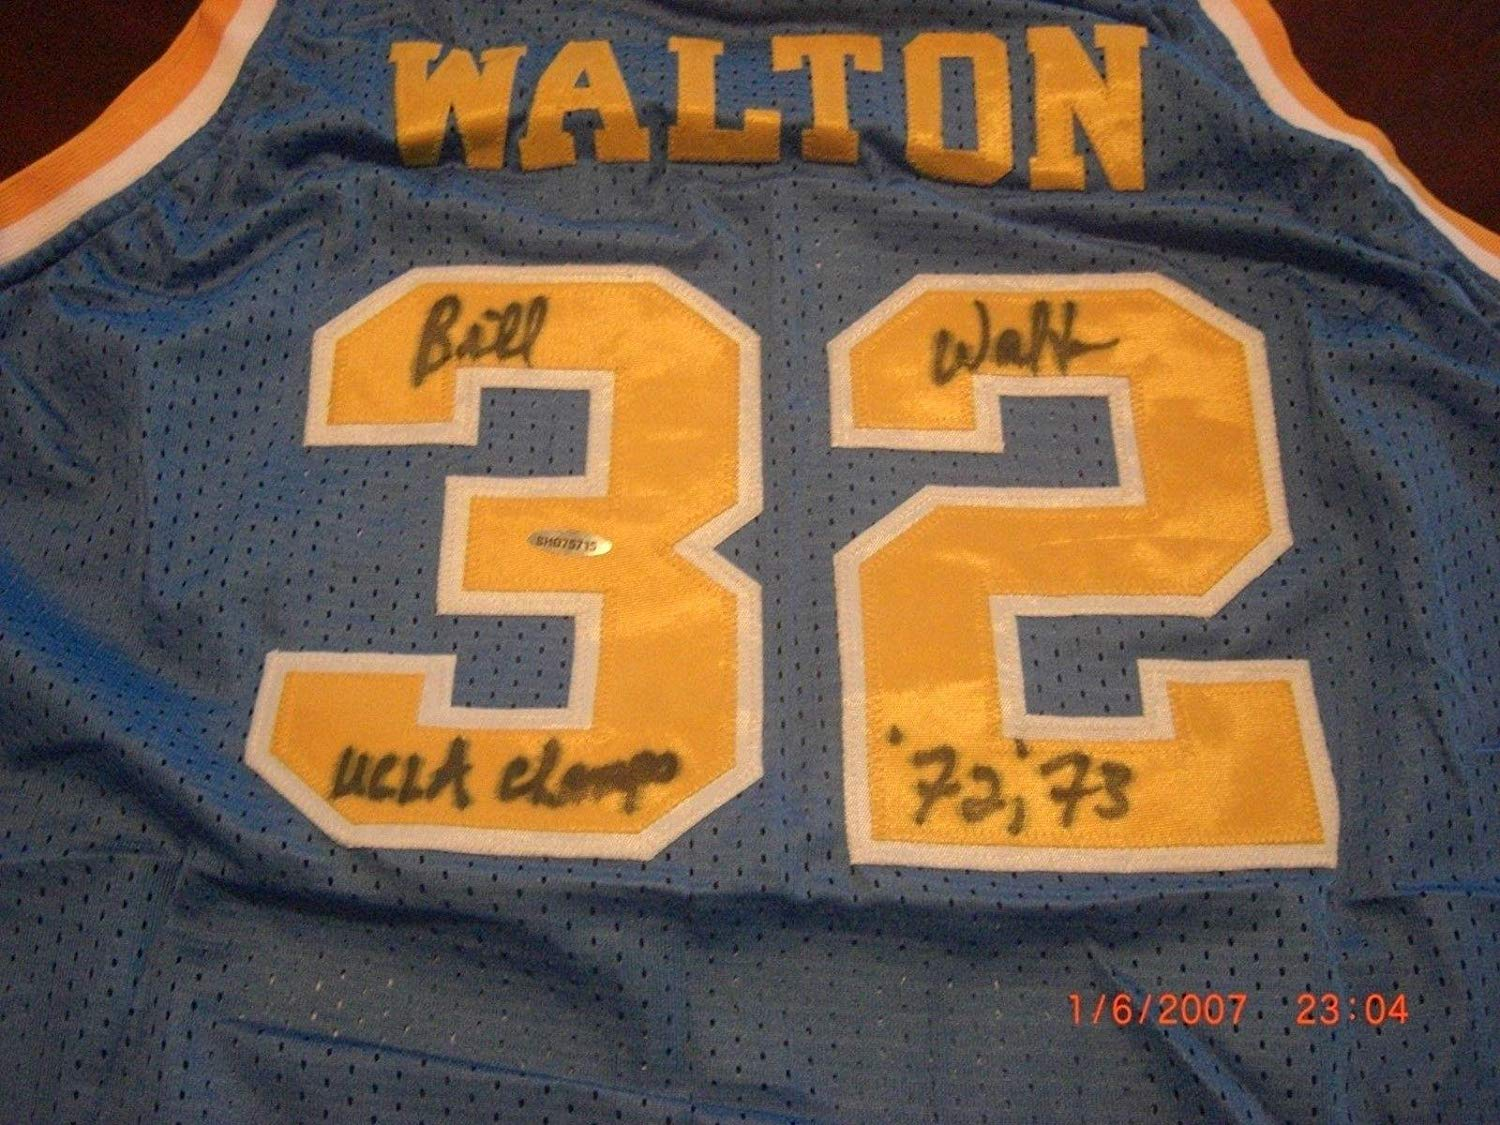 cef1c55b Get Quotations · Bill Walton Signed Jersey - Ucla Bruins ucla Champs 72 73  hologram - Tristar Productions Certified